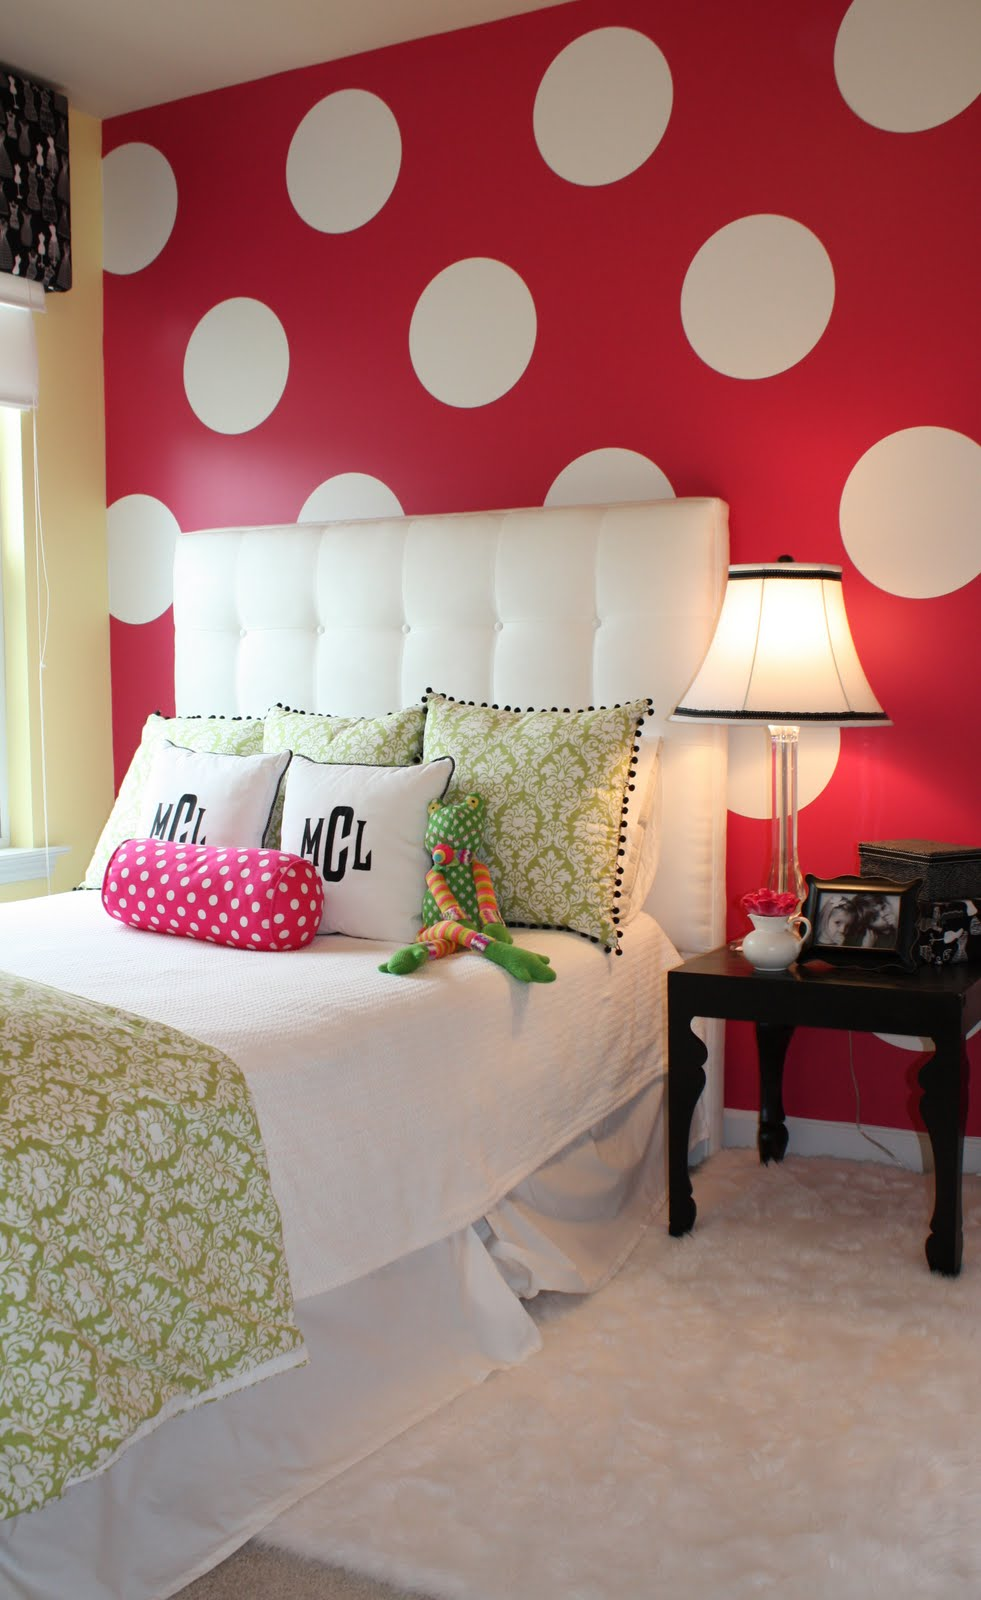 Bedroom decorating ideas for young women contemporary - 17 Best Images About Ideas For Shelby S Minnie Mouse Bedroom On Pinterest Disney Childs Bedroom And Minnie Mouse Bedding